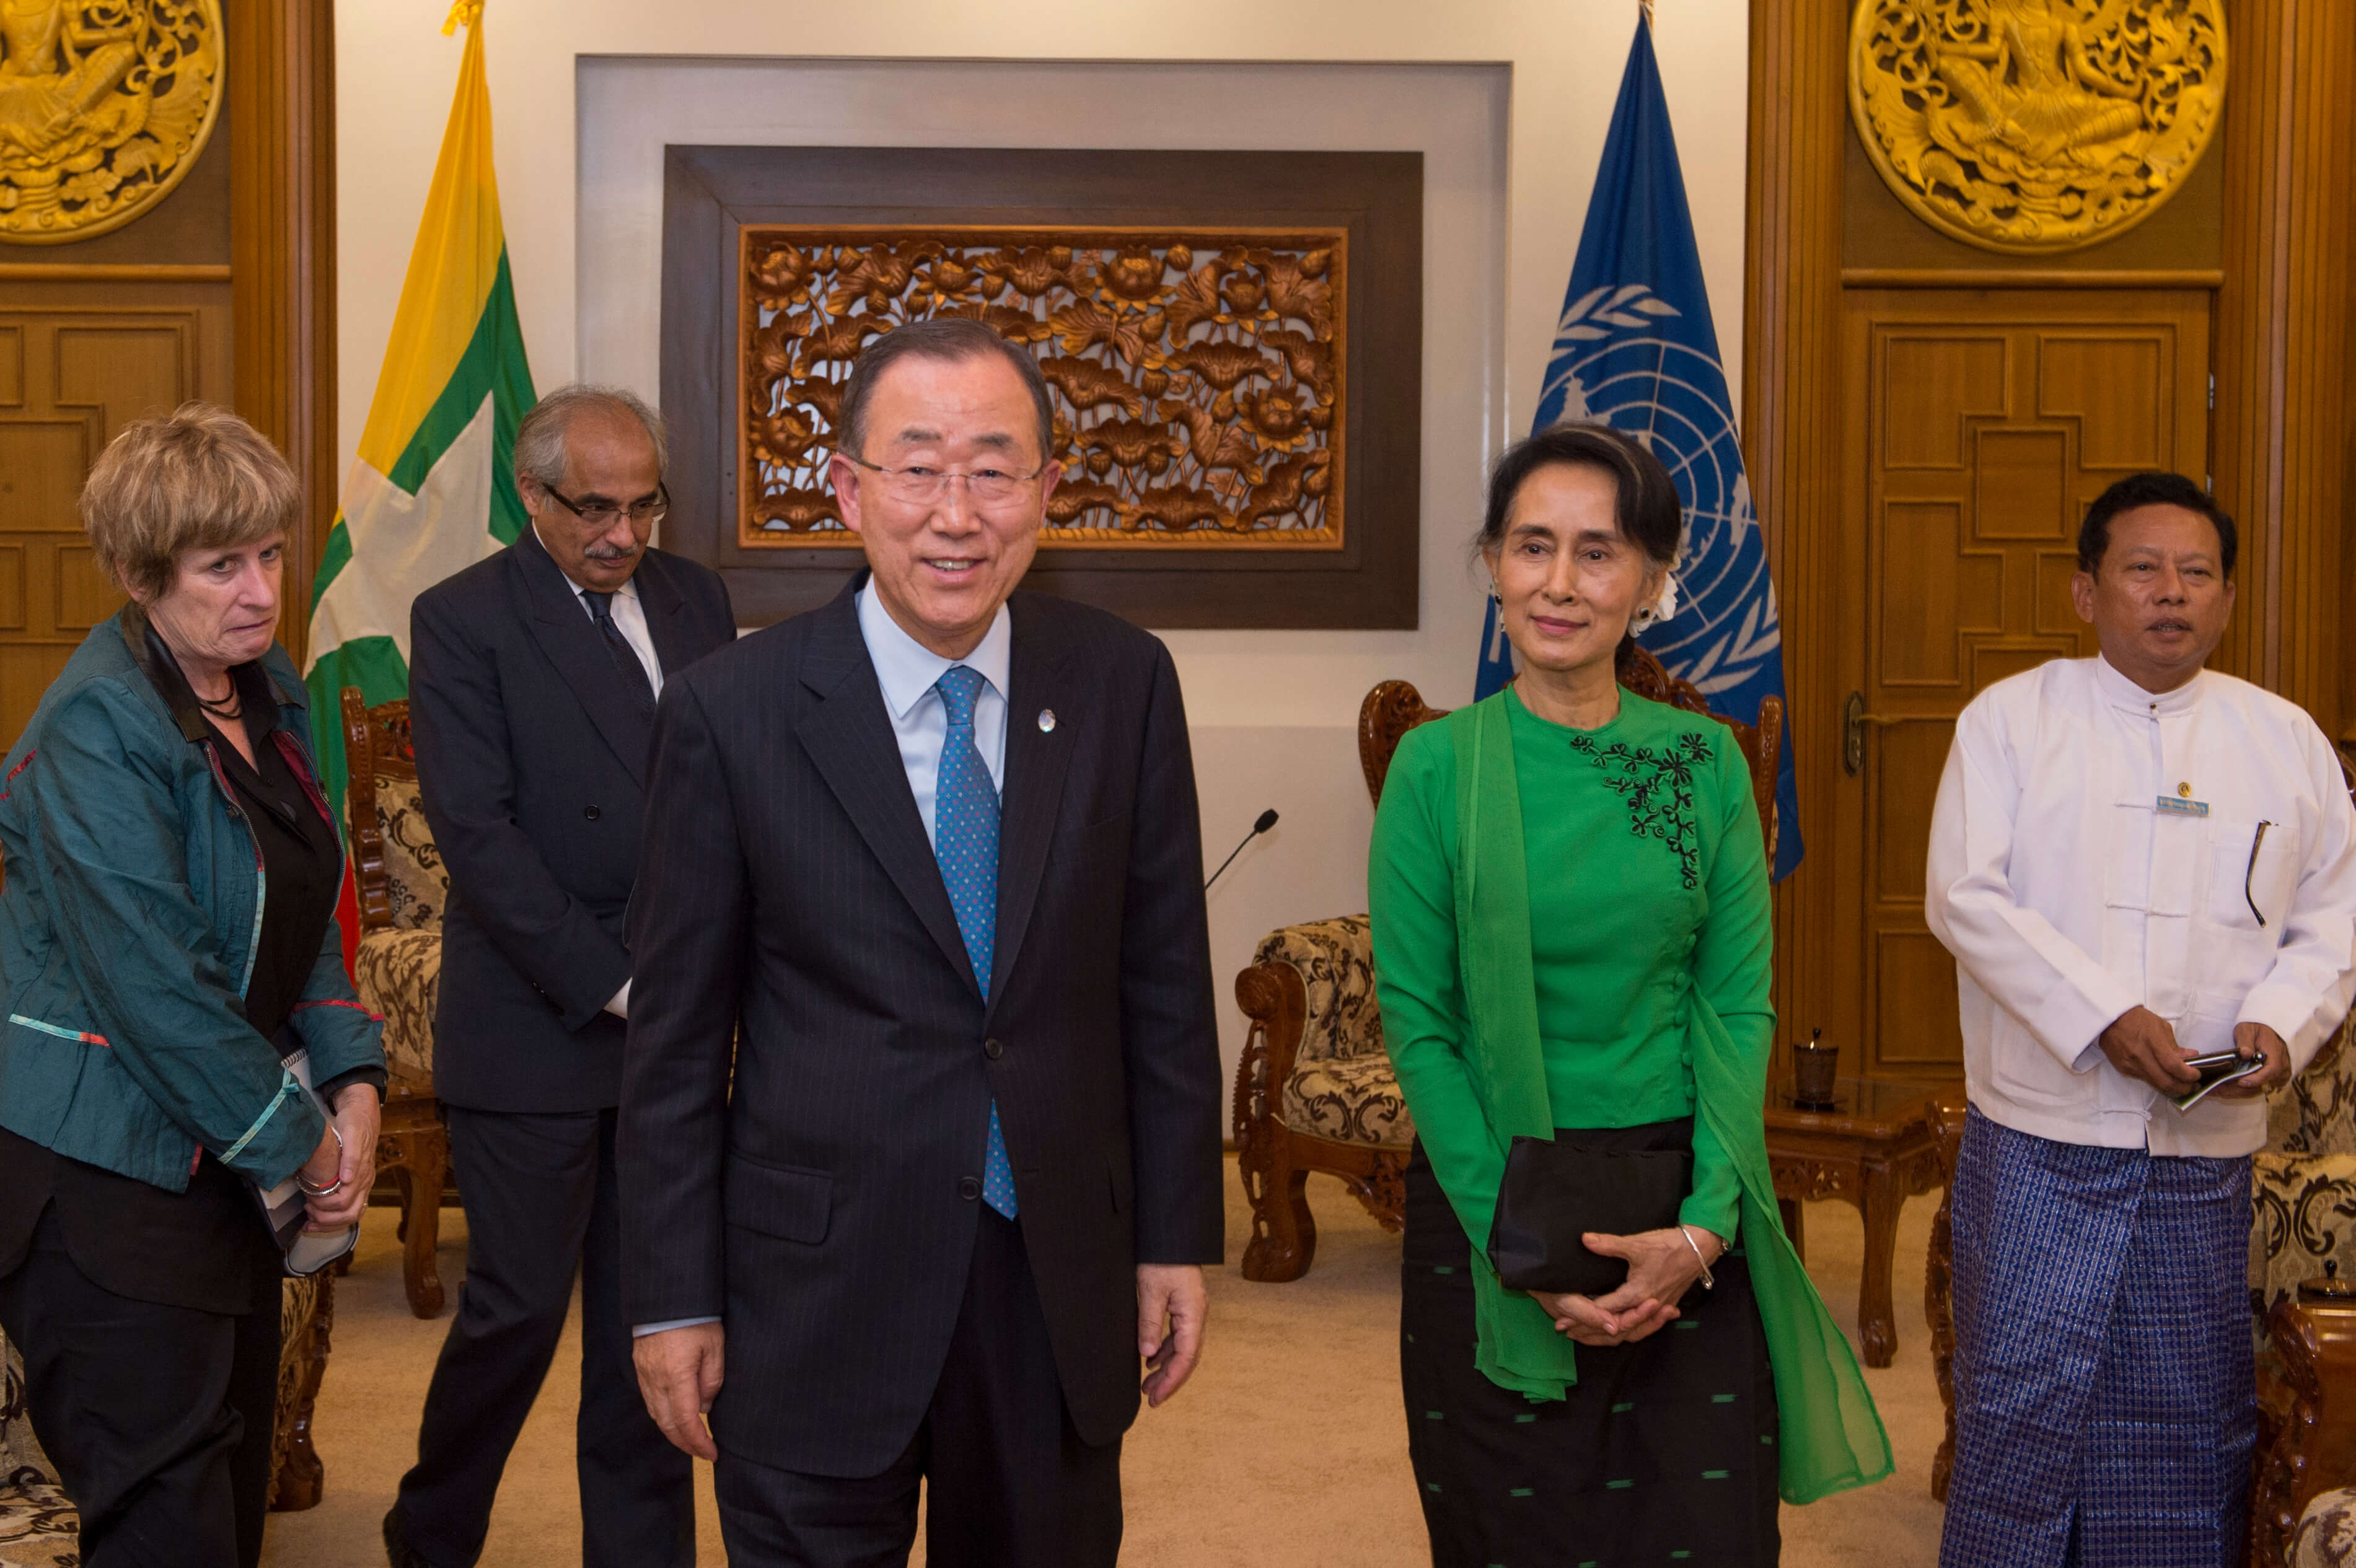 UN Secretary Ban-ki Moon meets with Aug San Suu Kyi in August 2016